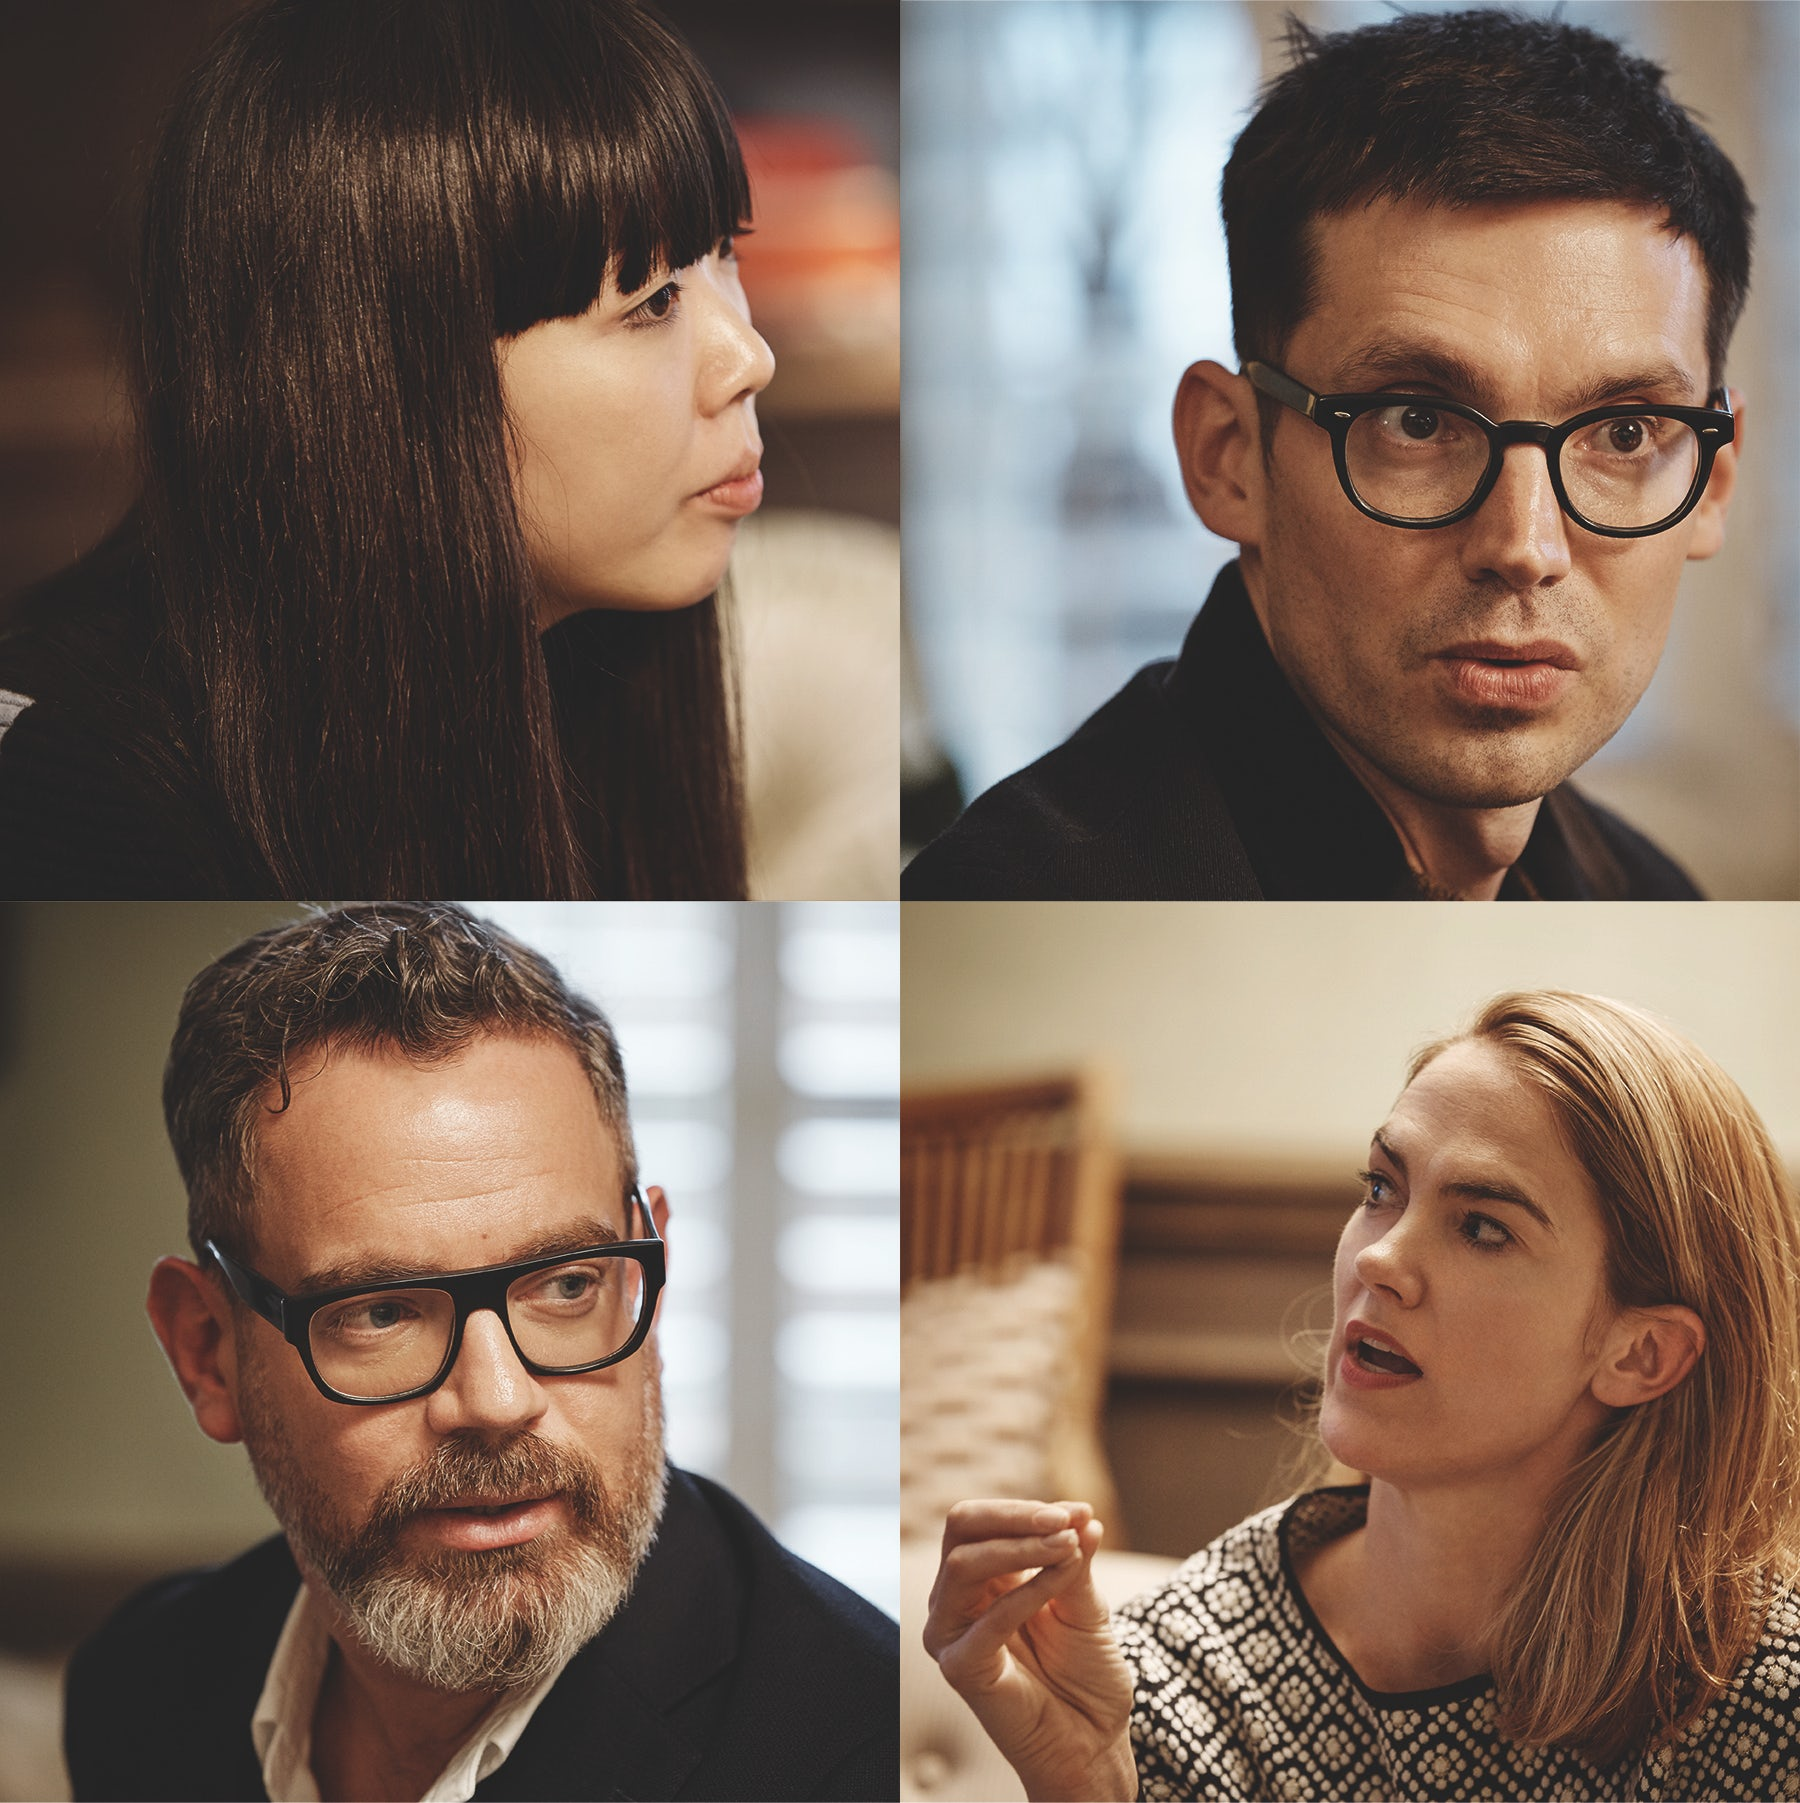 From left, clockwise: Susanna Lau, Erdem Moralioglu, JJ Martin and Daniel Marks | Photo: Mark Sanders for BoF